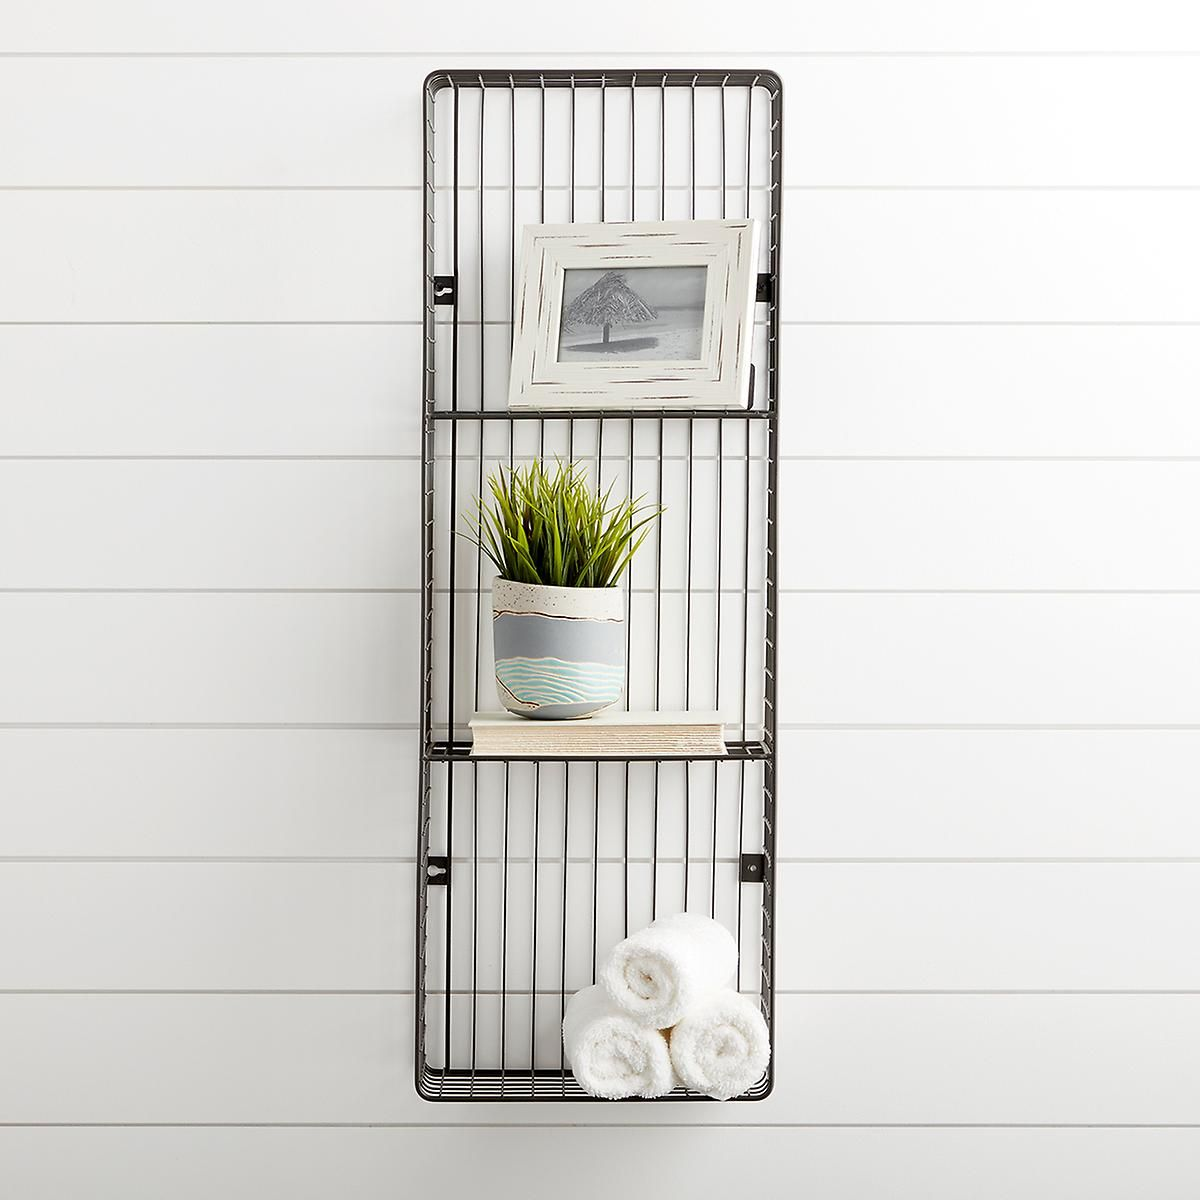 Pin By Lydia On My Pinterest Home Cube Wall Shelf Wall Cubes Wall Mounted Tv